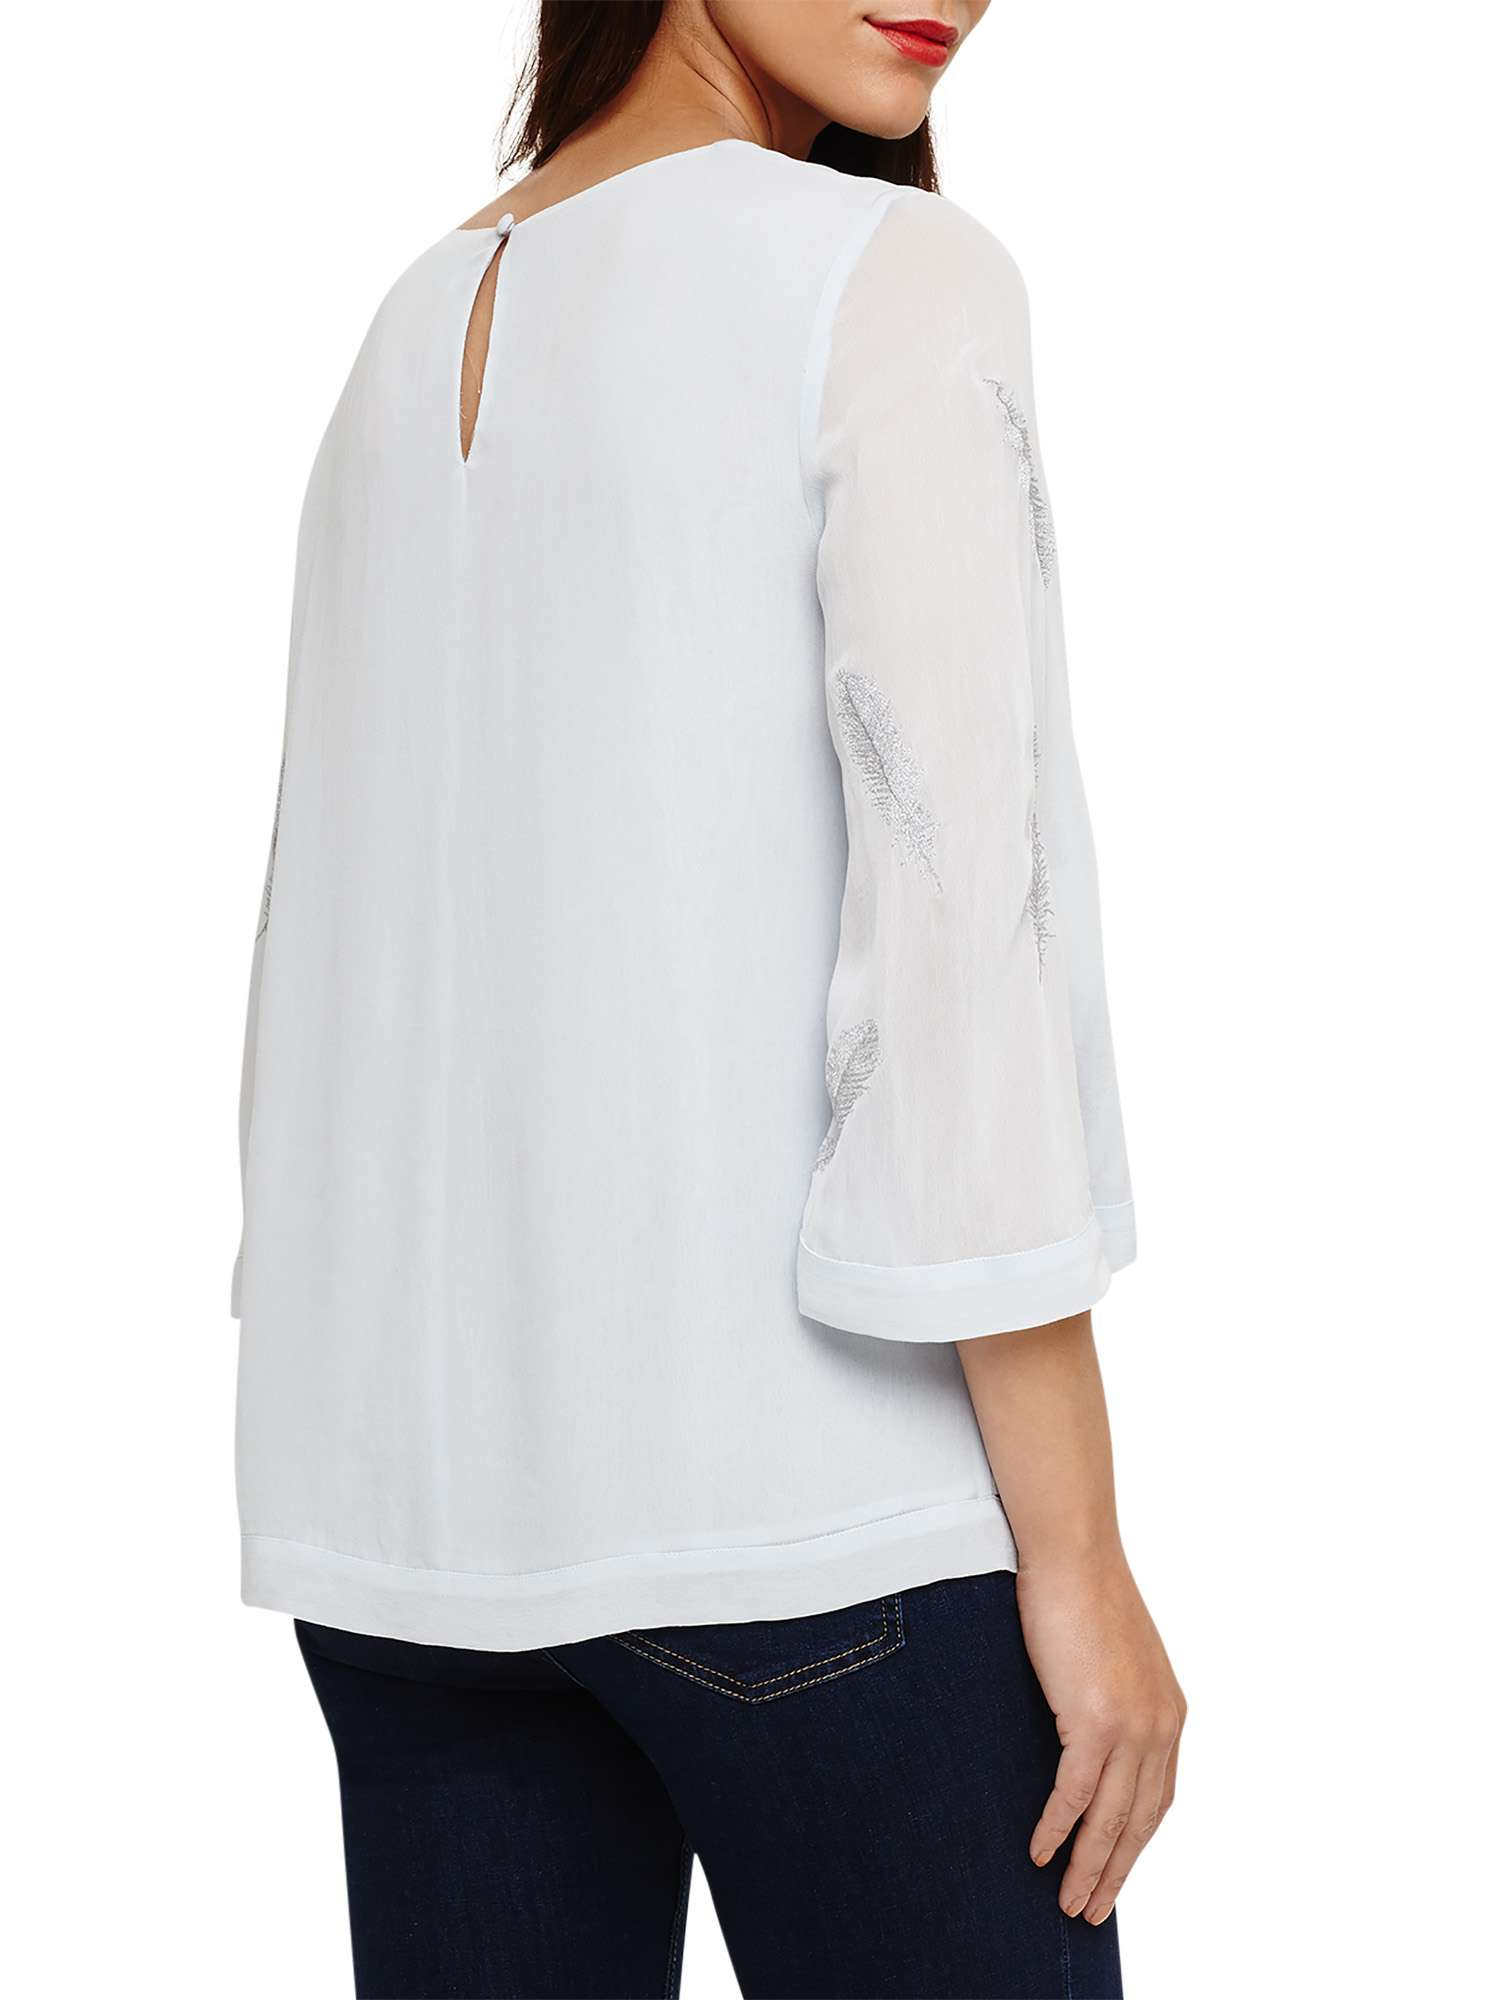 Embroidered Feather Blouse Odette Eight Phase qxatSYwEW7